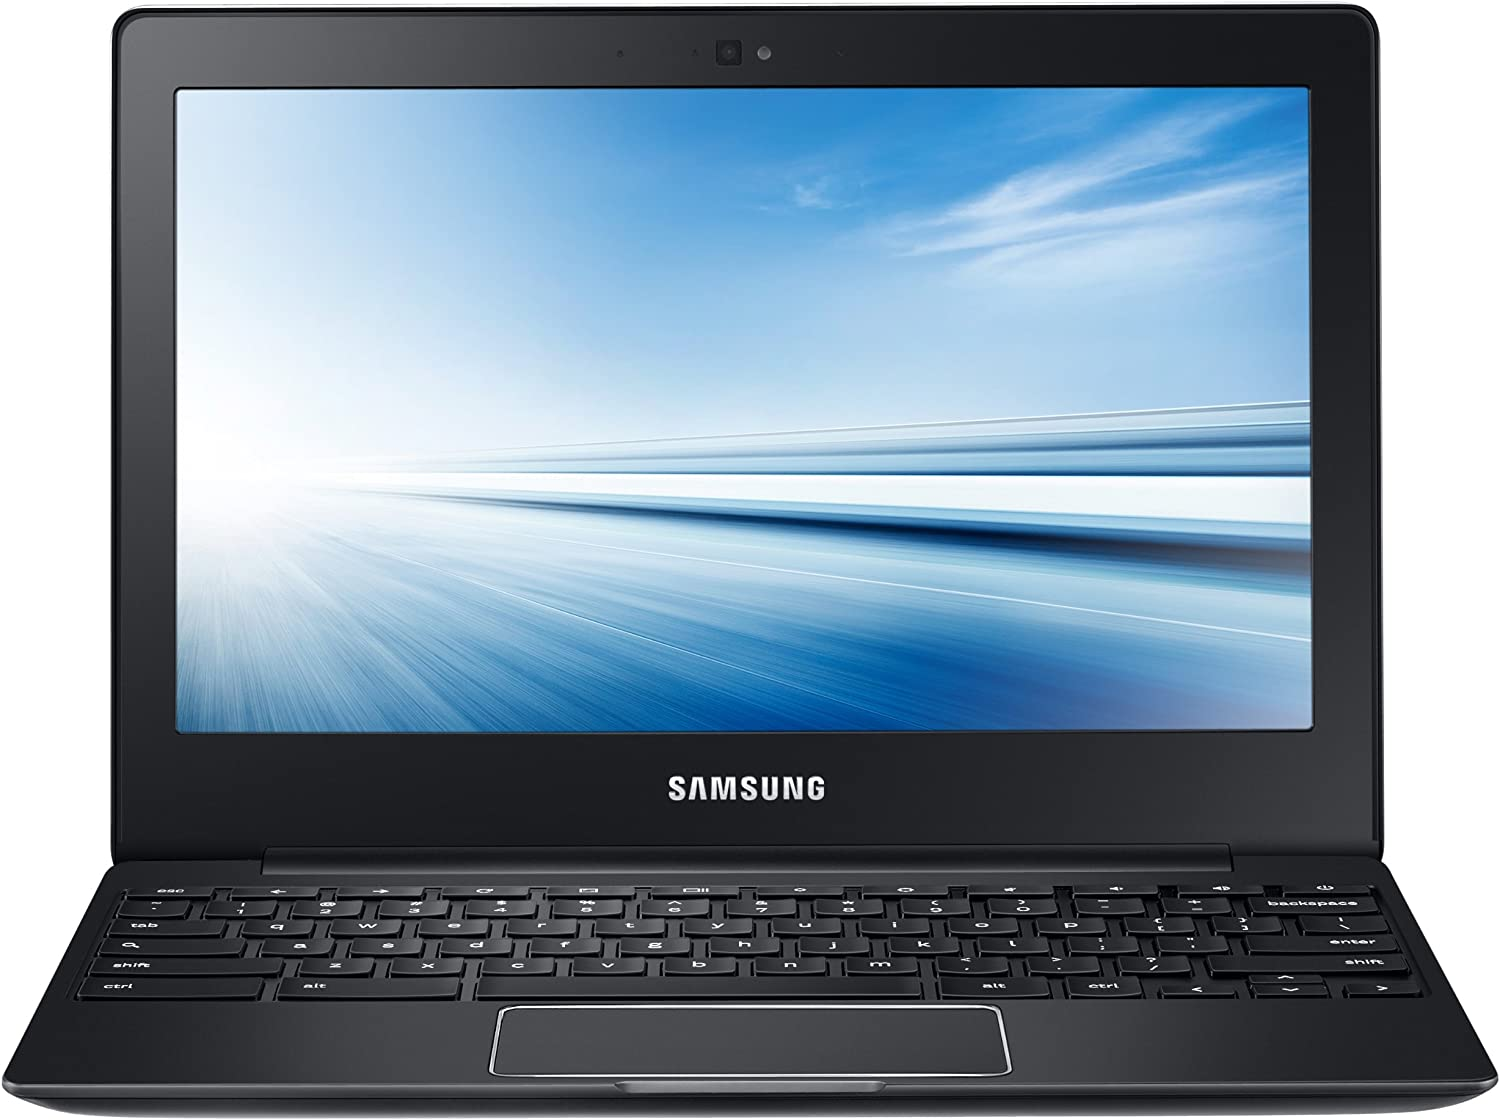 Samsung Chromebook 2 11.6 Inch Laptop (Samsung Exynos, 4 GB, 16 GB SSD, Black)